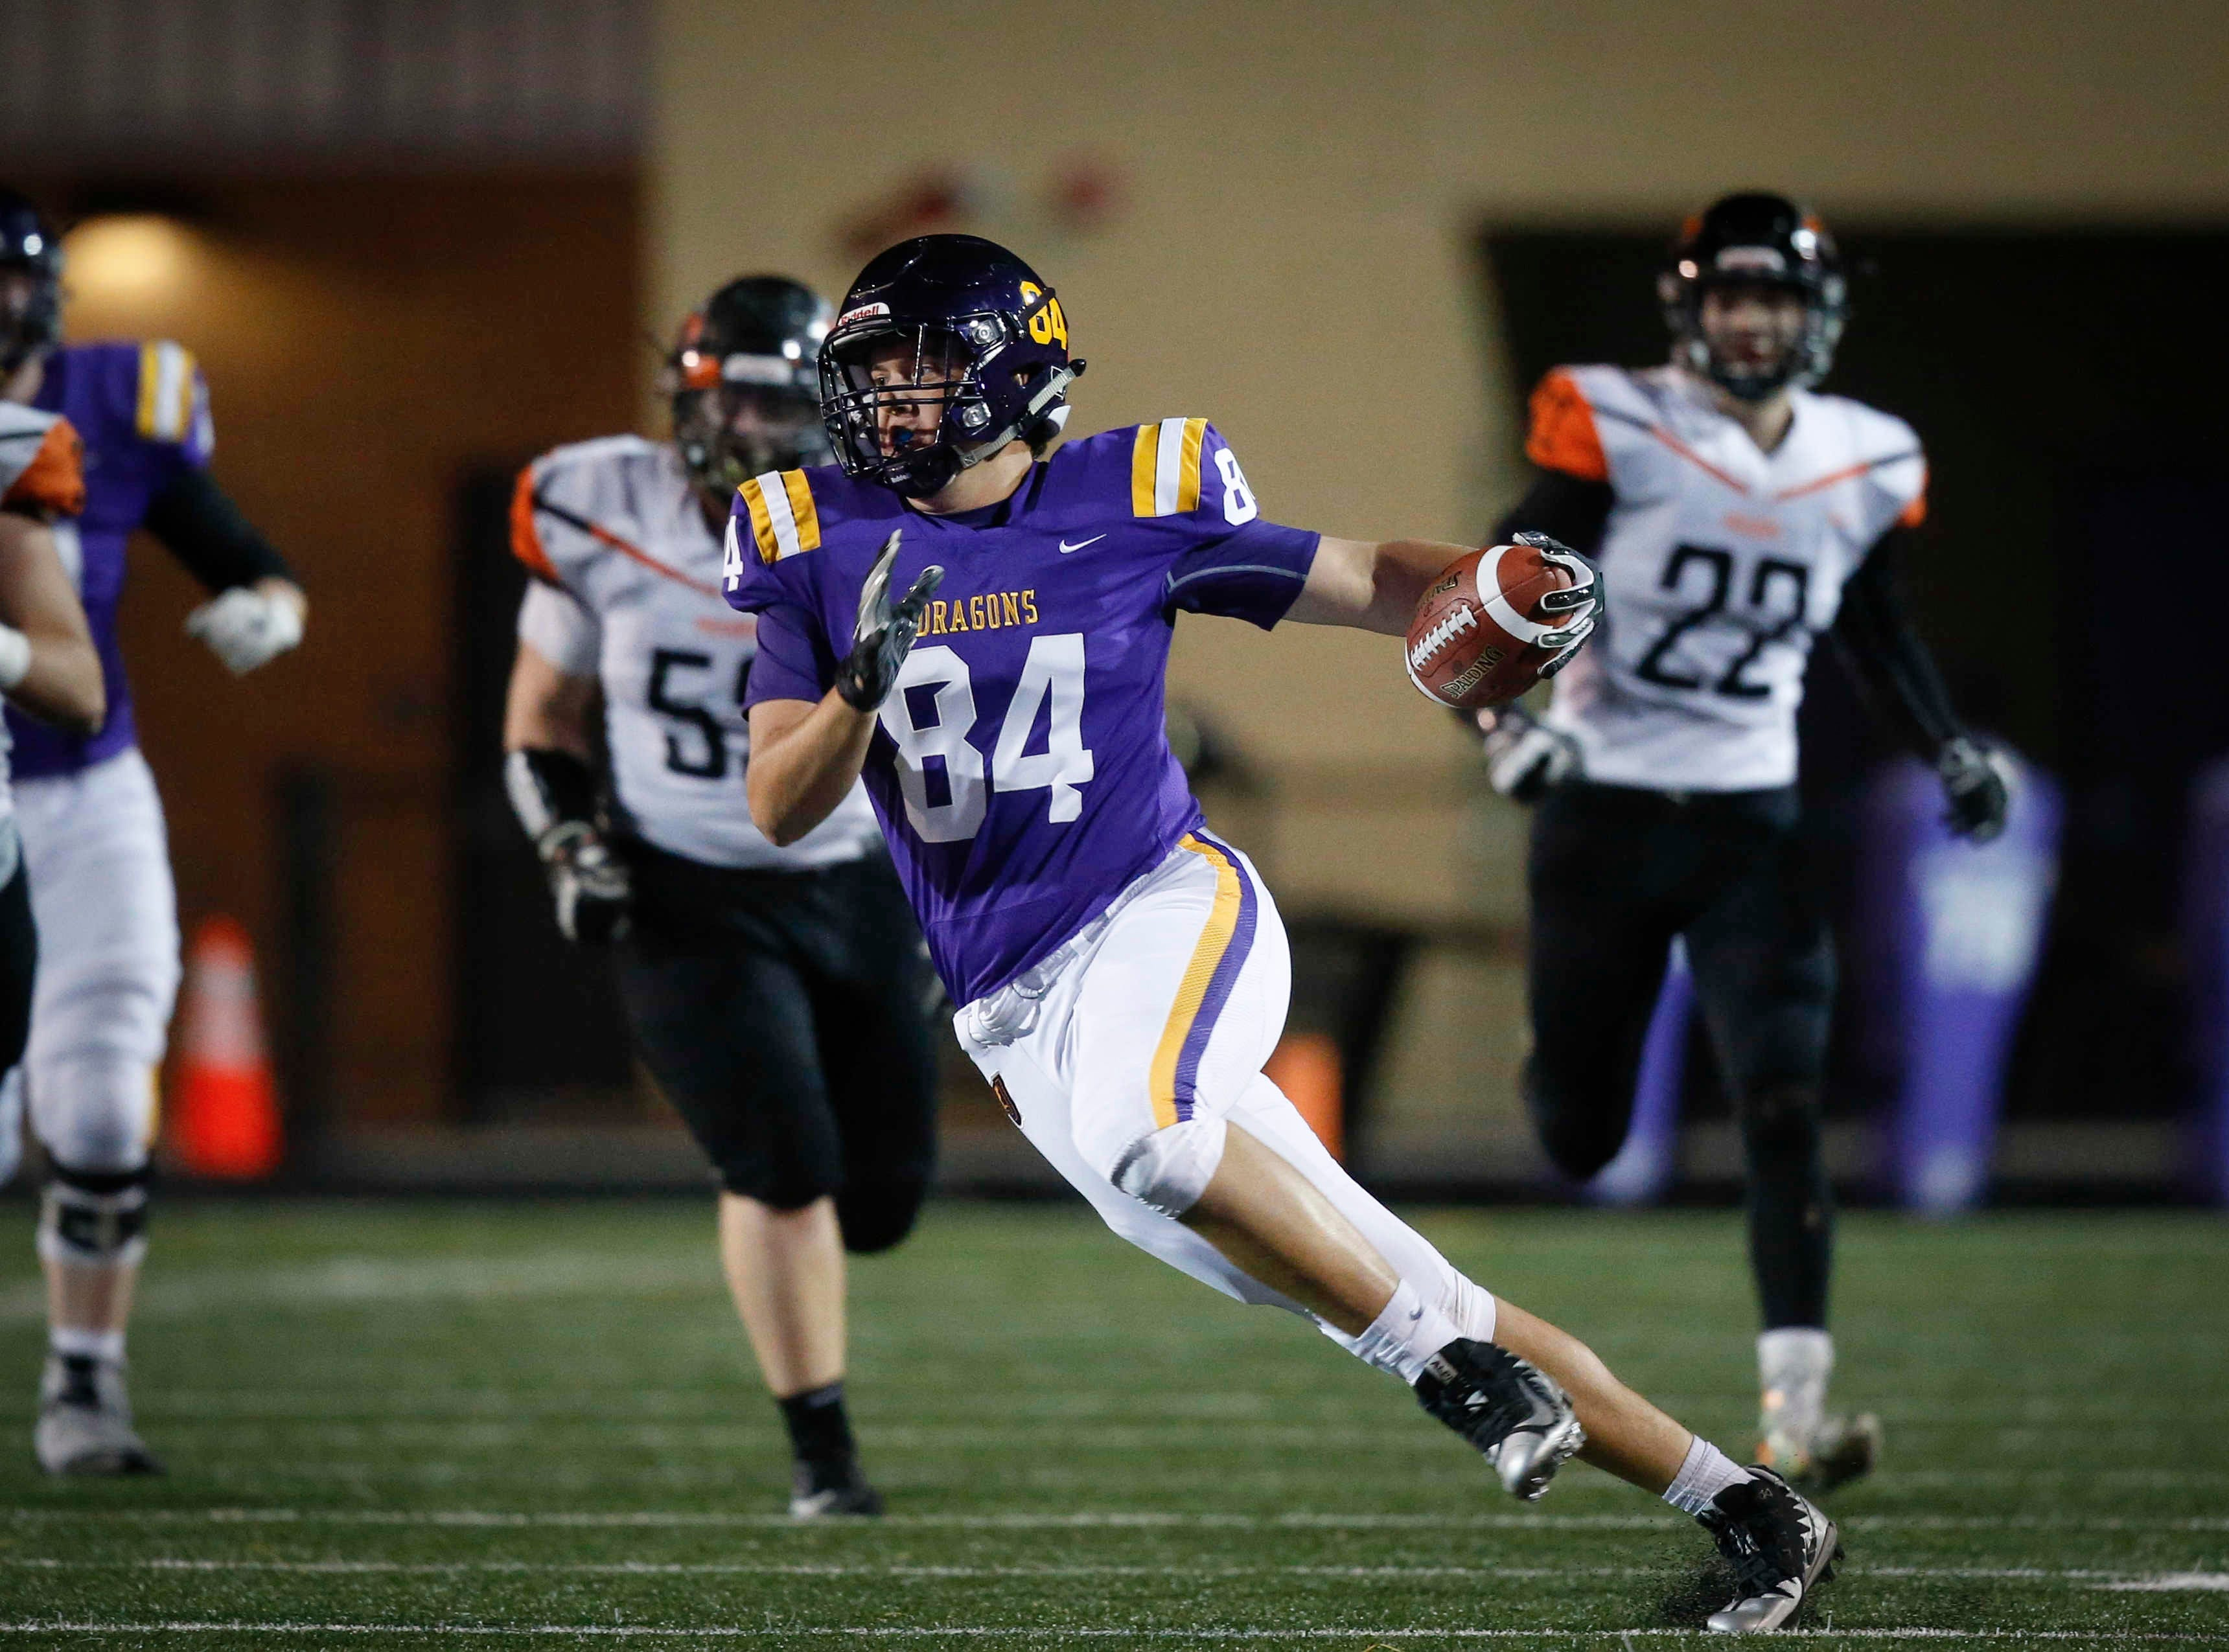 Johnston tight end Peyton Williams runs the ball after catching a pass against Cedar Rapids Prairie during the first round of Iowa high school football playoffs on Friday, Oct. 26, 2018.